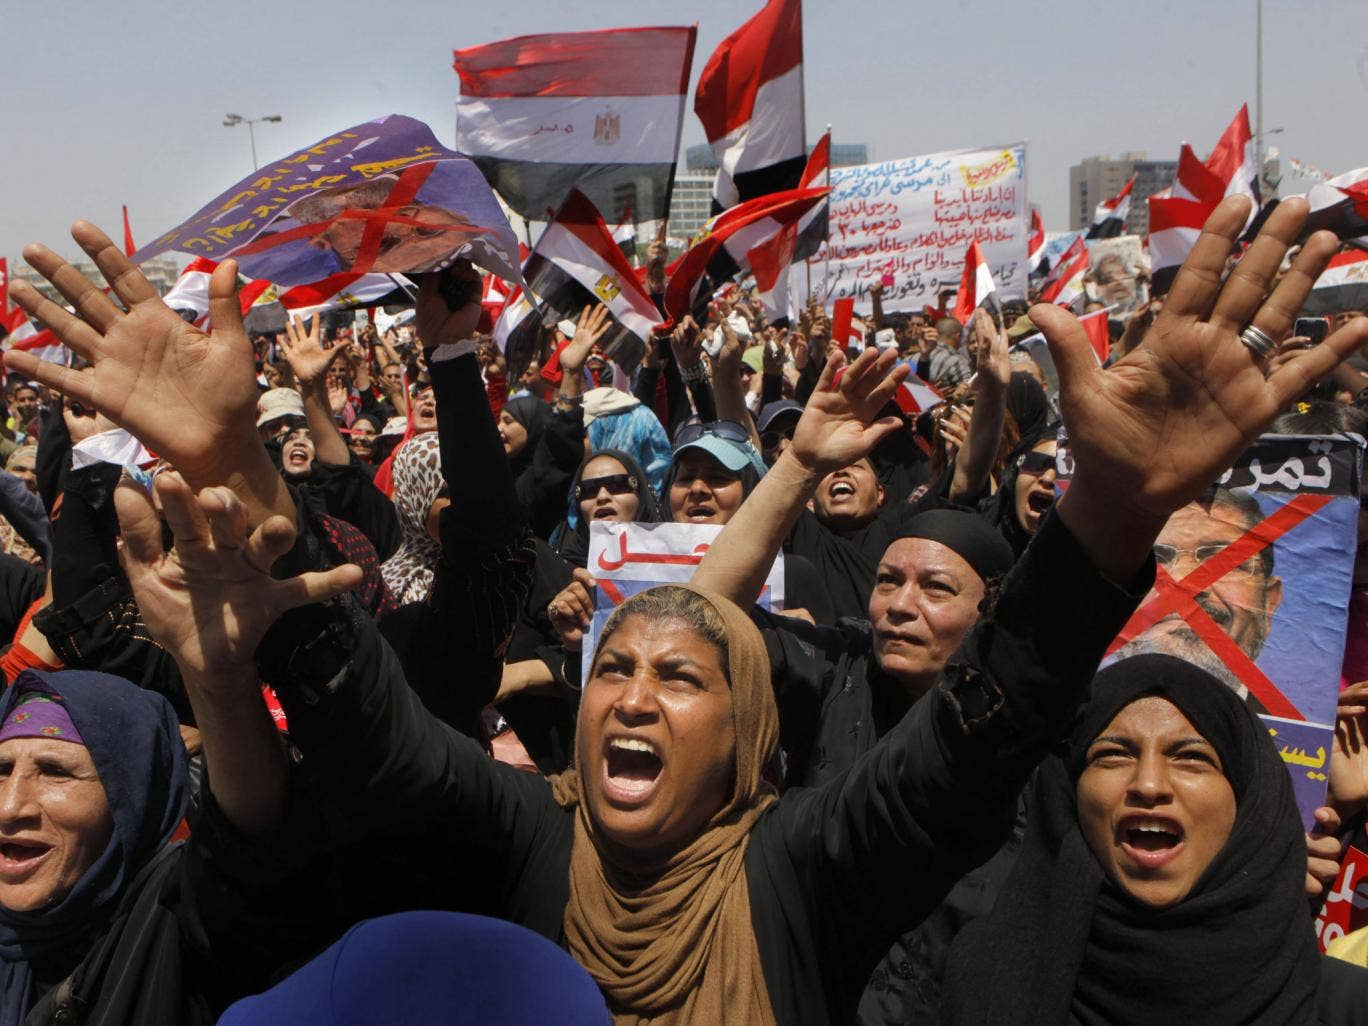 Protesters chant and hold anti-President Morsi posters during a rally in Cairo's Tahrir Square